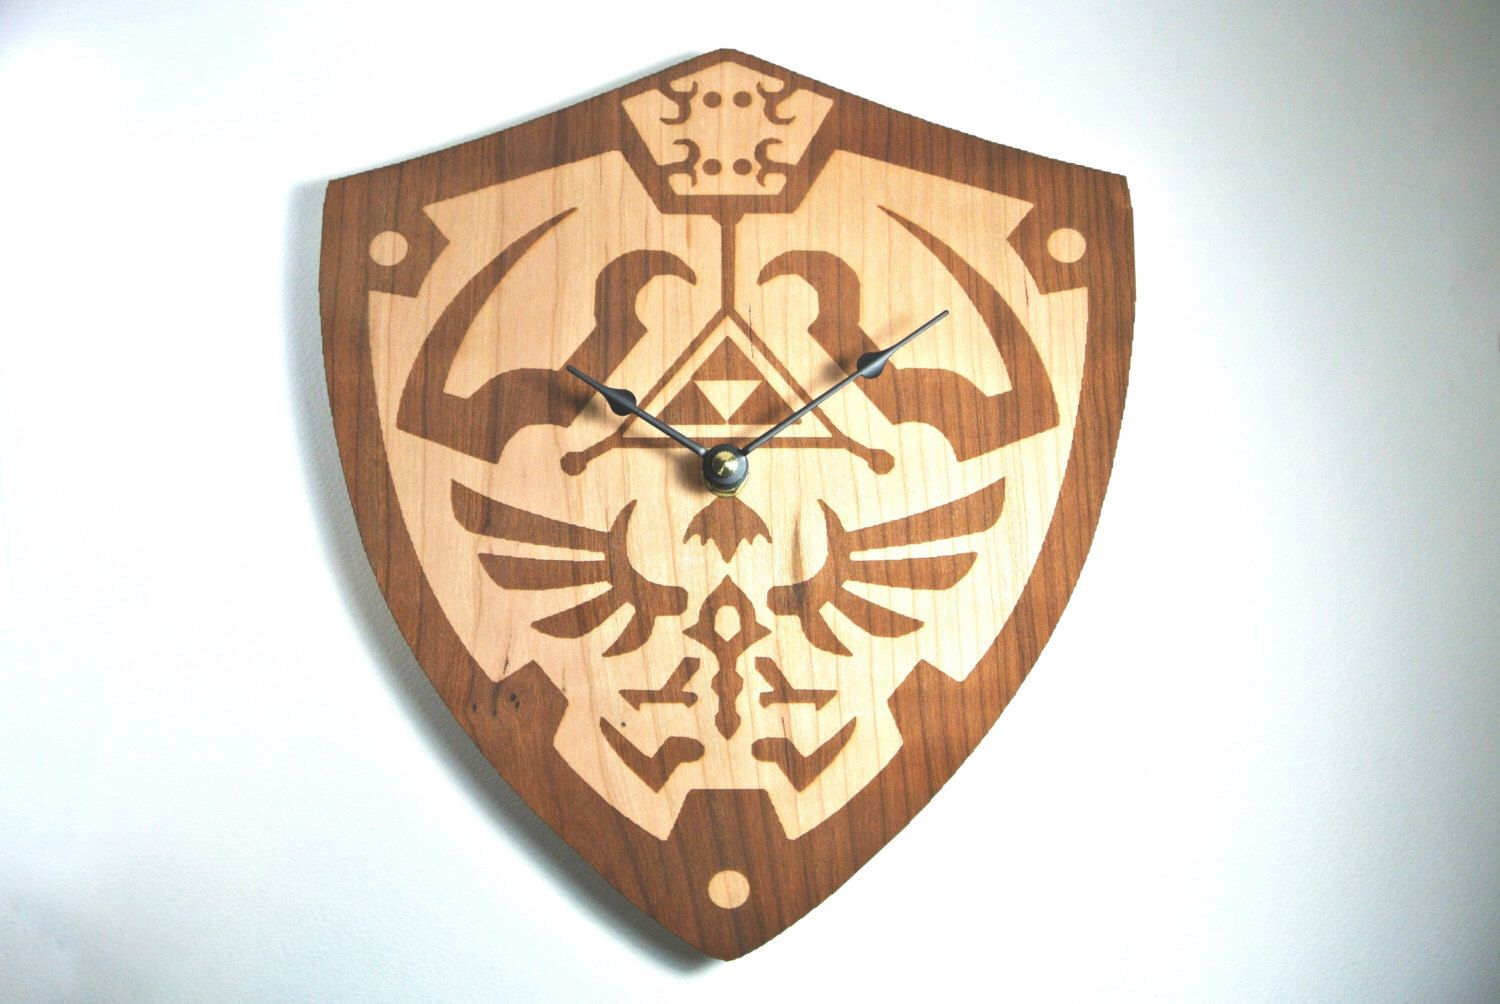 Hylian shield clock wood legend of zelda by talltalelaser on etsy